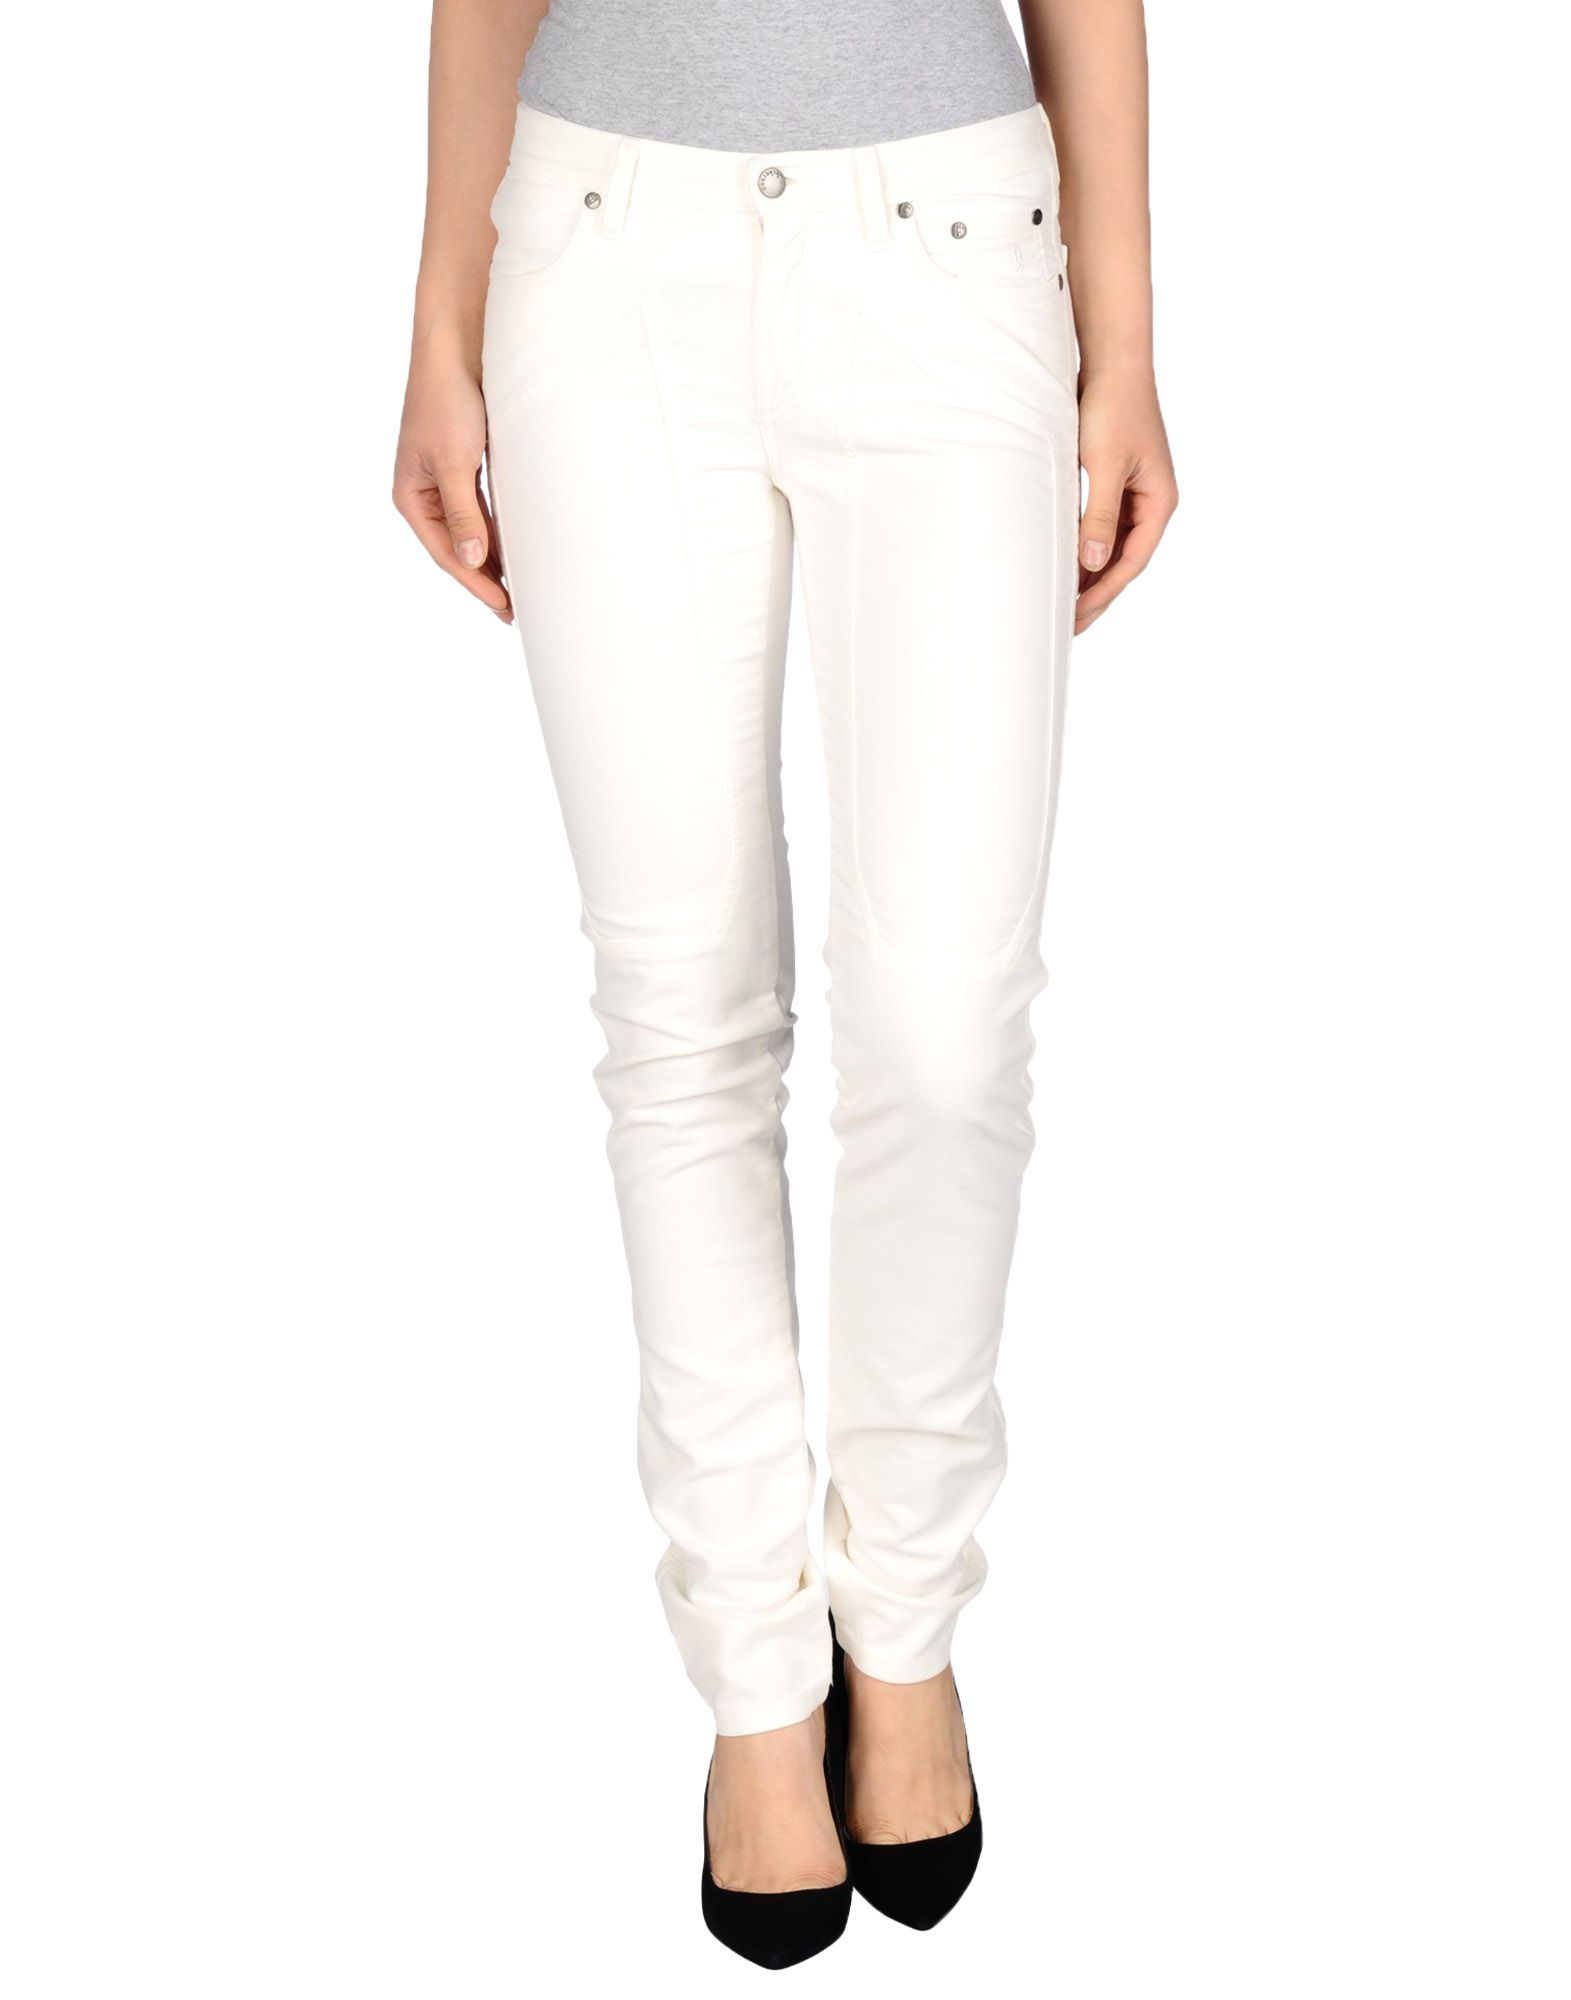 Free shipping and returns on Men's White Casual Pants at nazhatie-skachat.gq